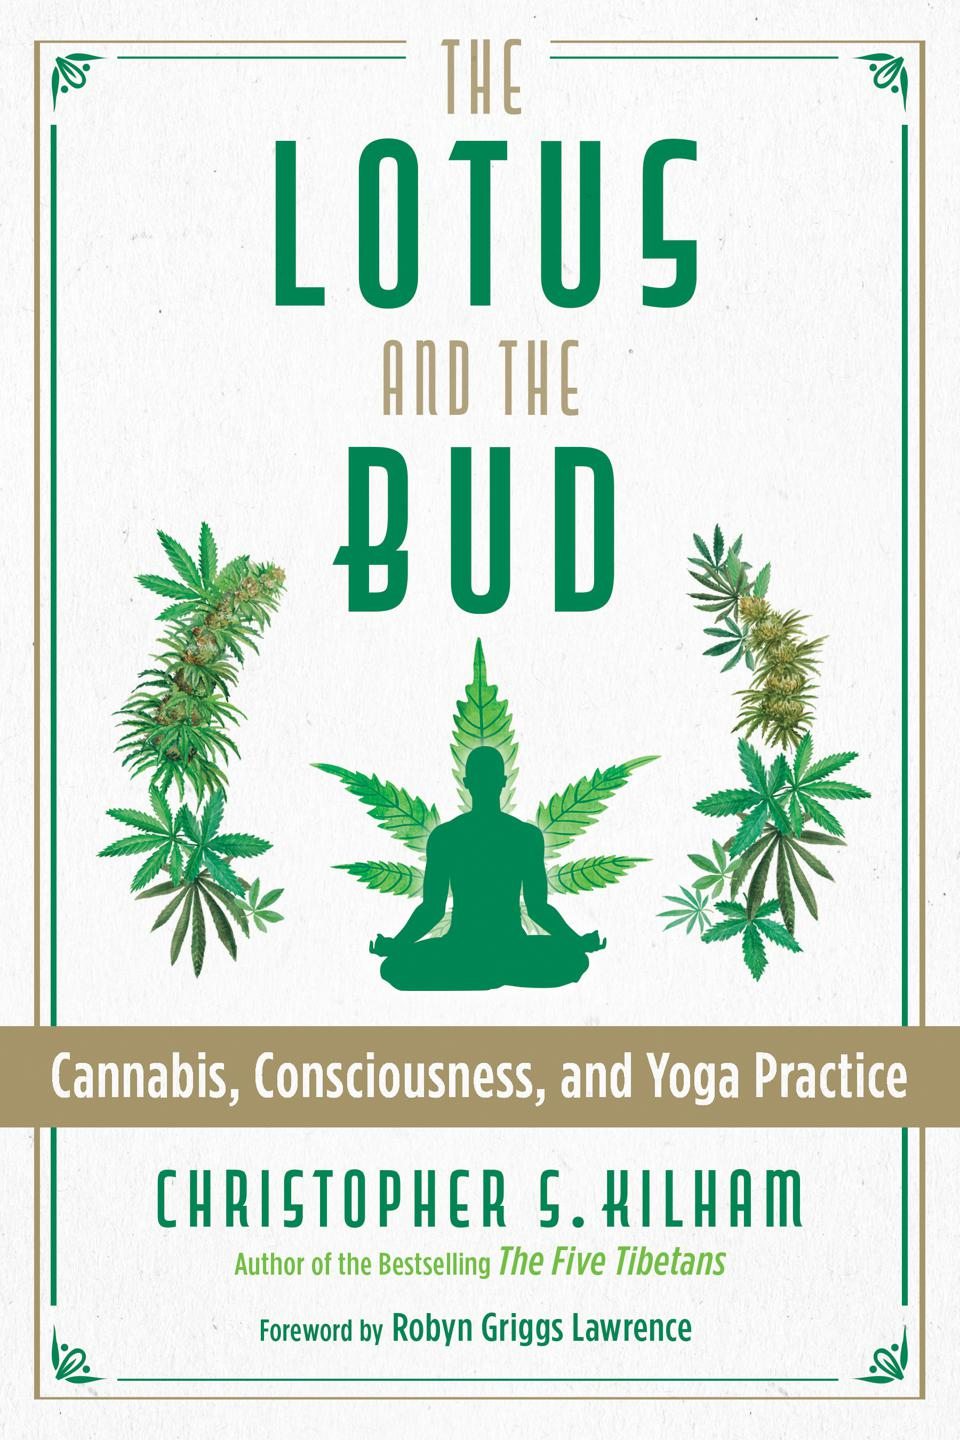 Christopher S. Kilham's new book ″The Lotus and The Bud″ takes a close look at cannabis and consciousness.